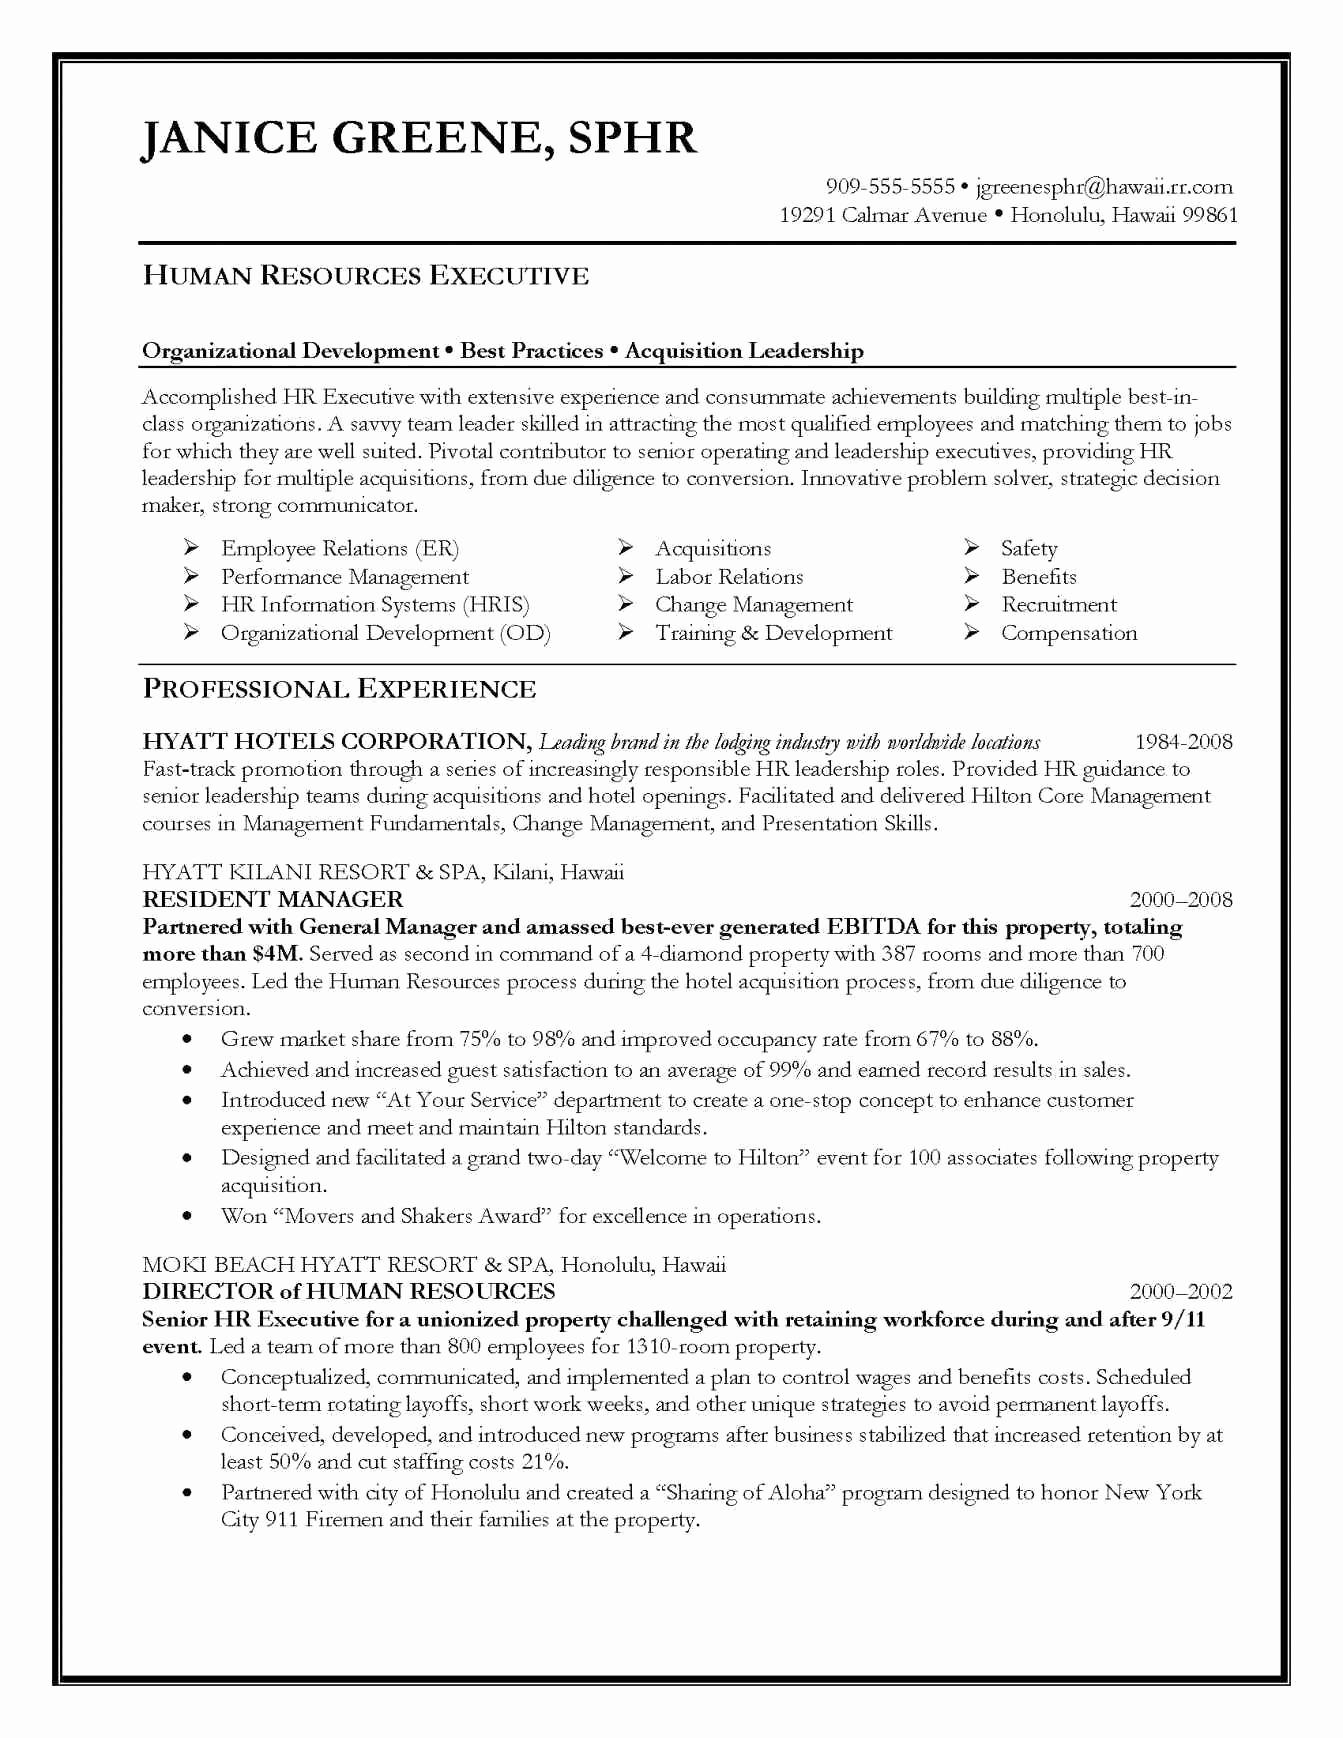 group resume template for a hotel Collection-Resume Samples for Food Service Awesome Front Desk Hotel Resume Elegant Hospitality Objective Resume Samples 8-l